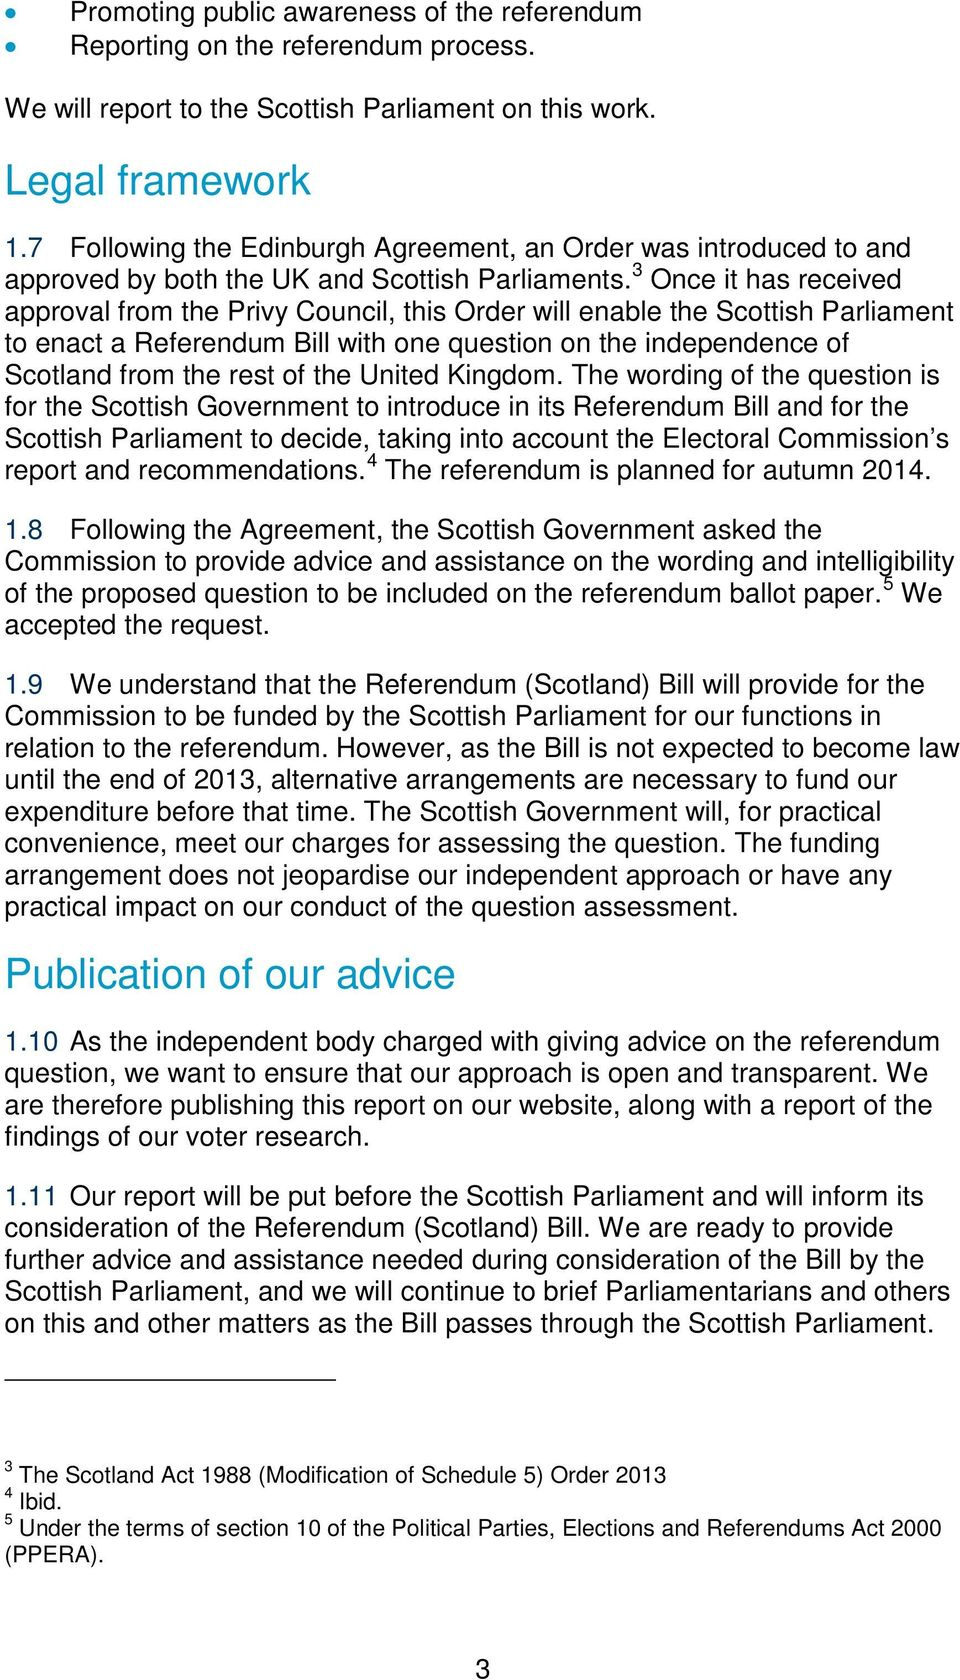 3 Once it has received approval from the Privy Council, this Order will enable the Scottish Parliament to enact a Referendum Bill with one question on the independence of Scotland from the rest of